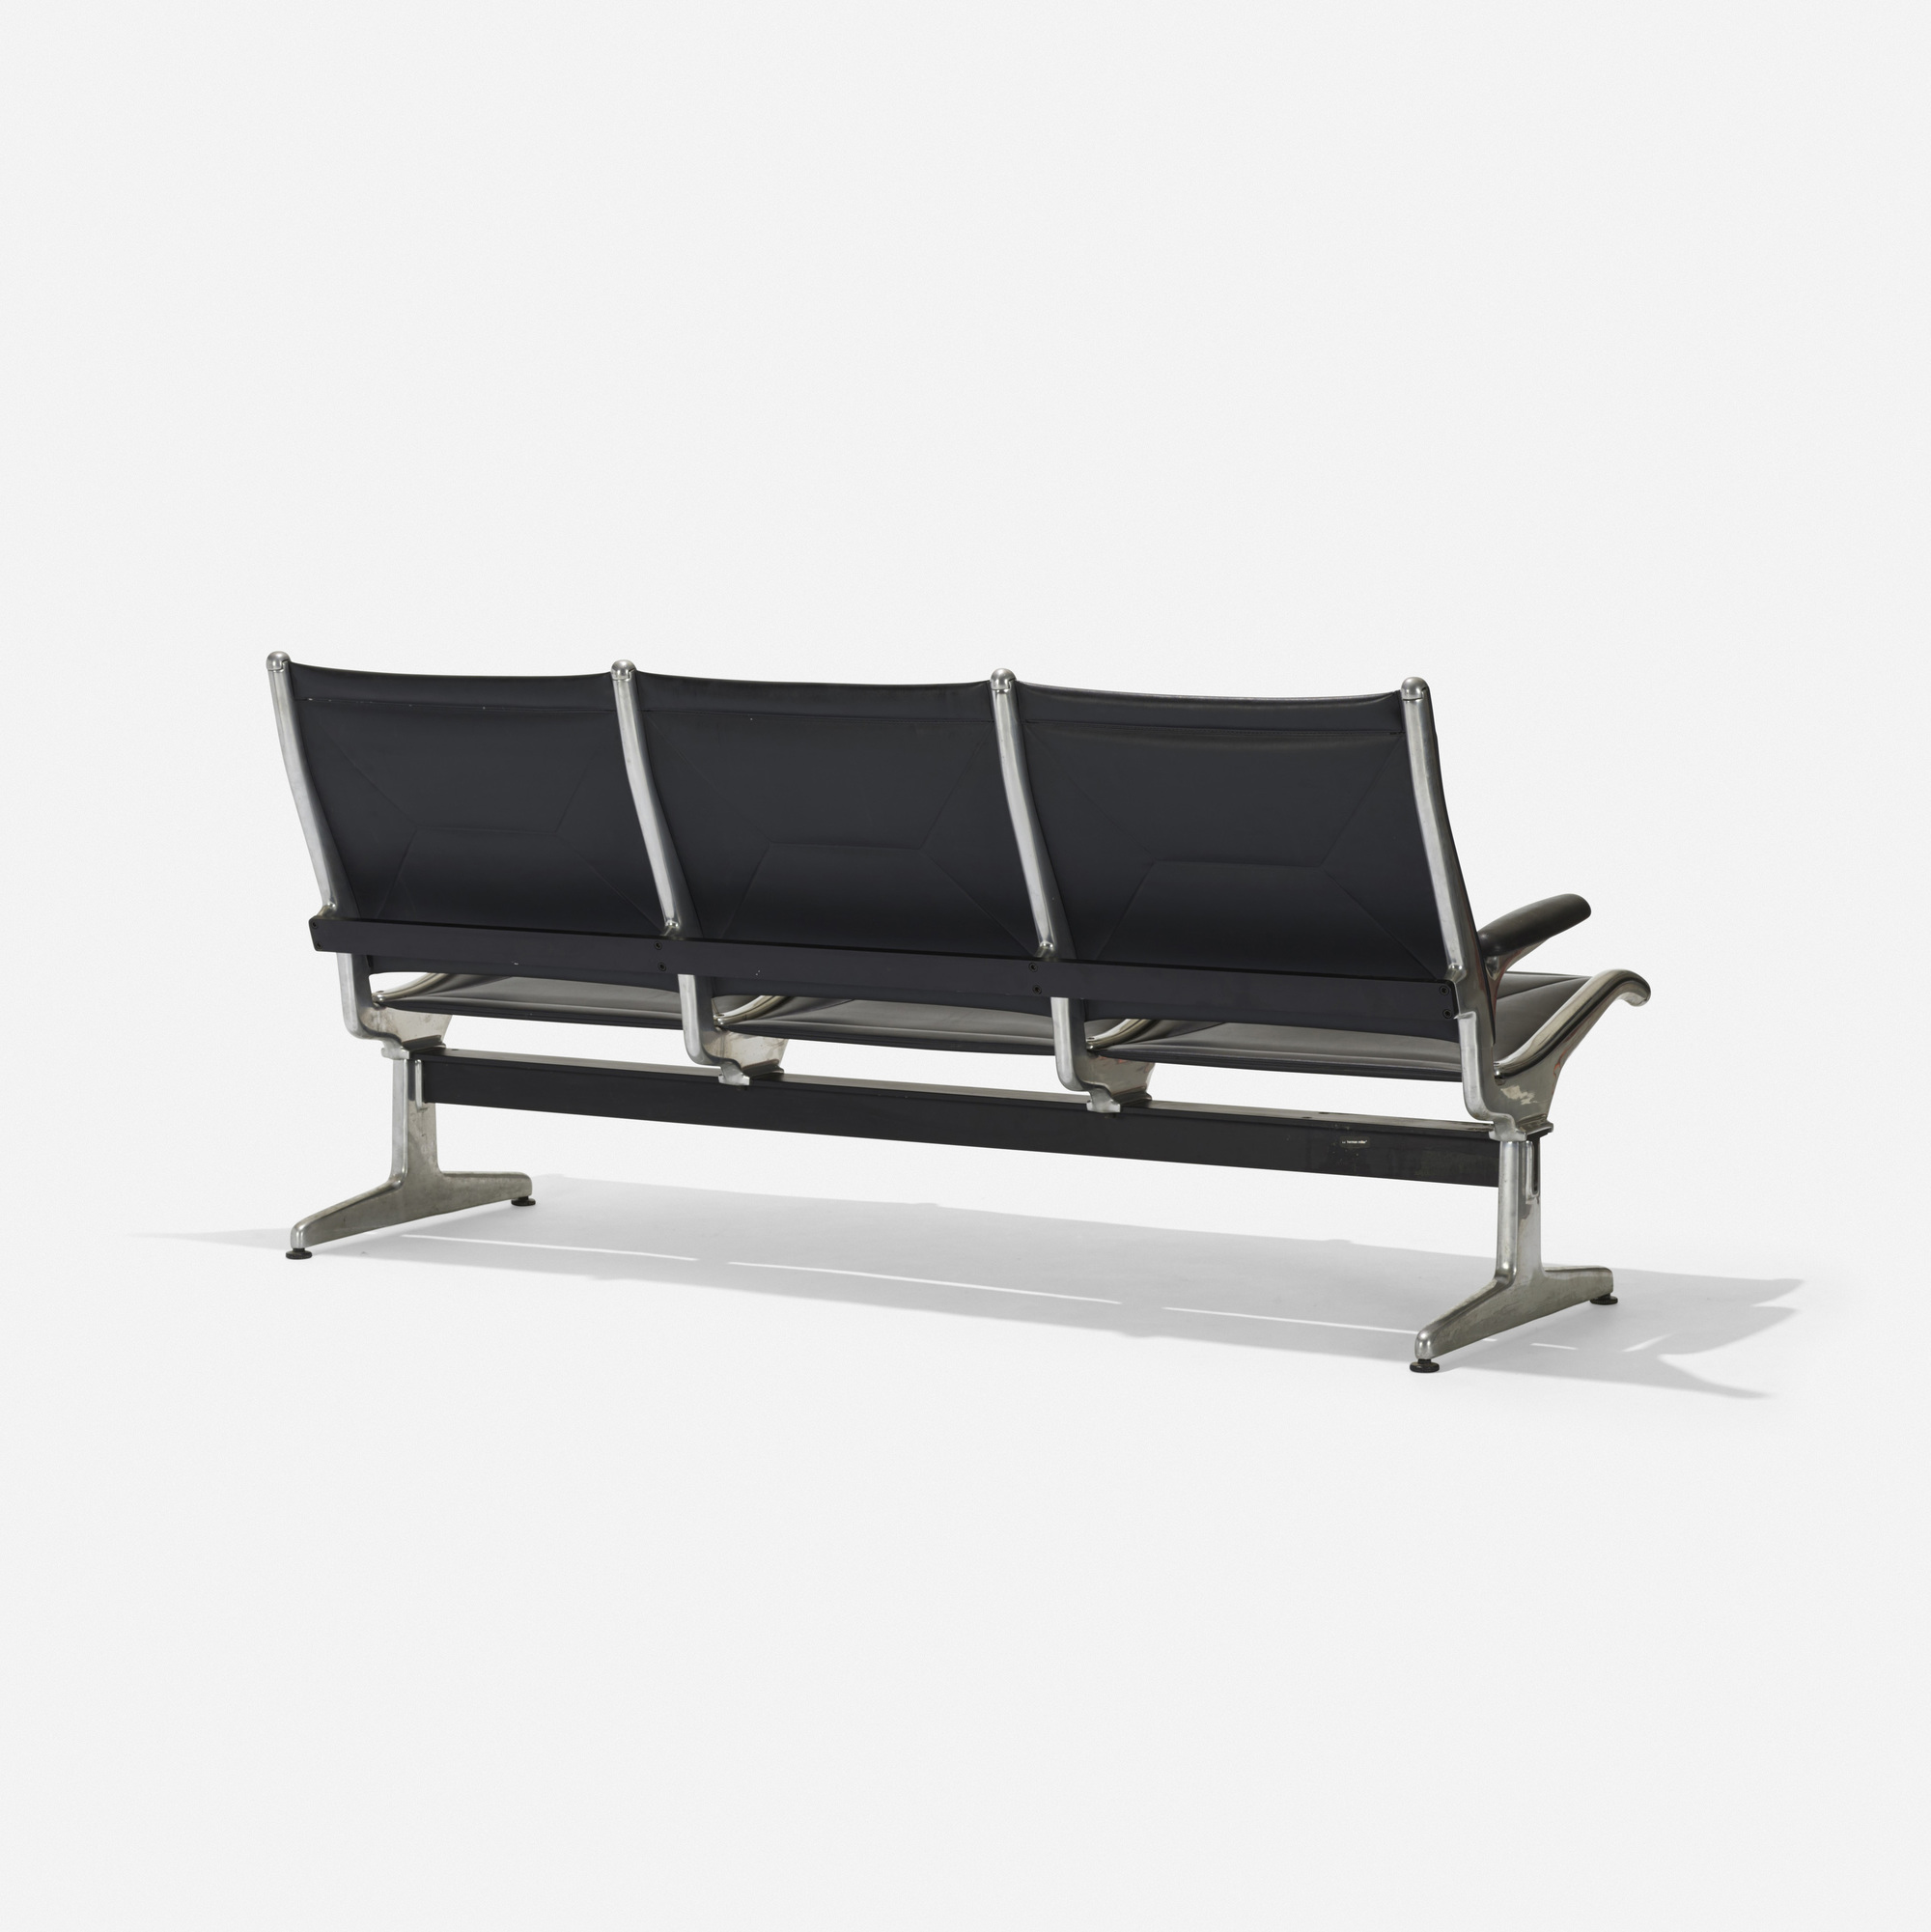 187: Charles and Ray Eames / Tandem Sling seating (2 of 3)